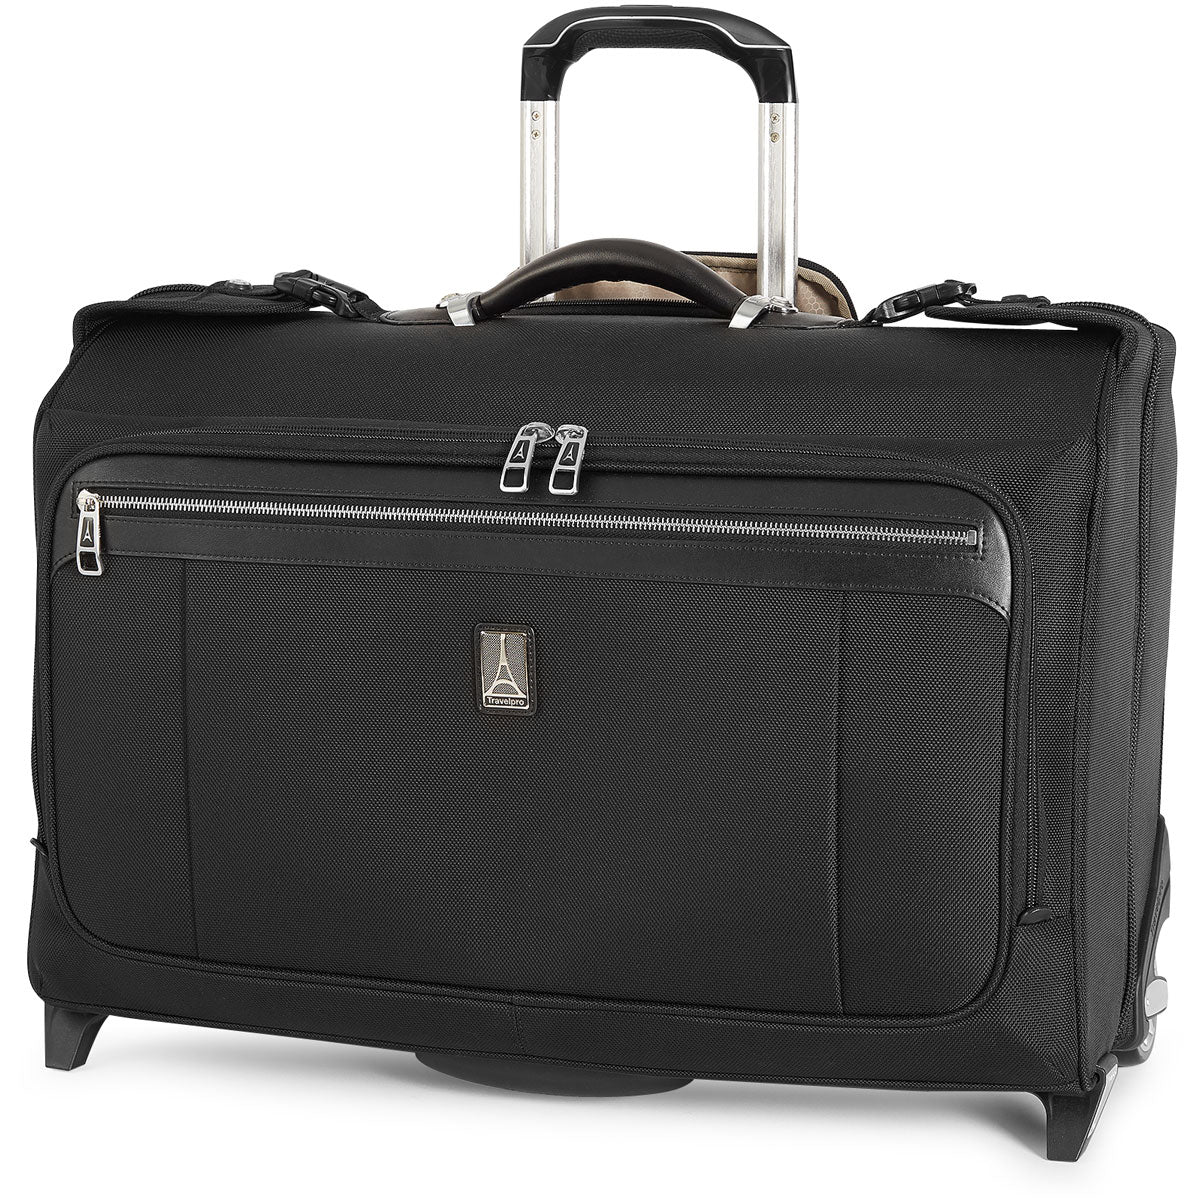 Travelpro Platinum Magna2 Carry On Rolling Garment Bag